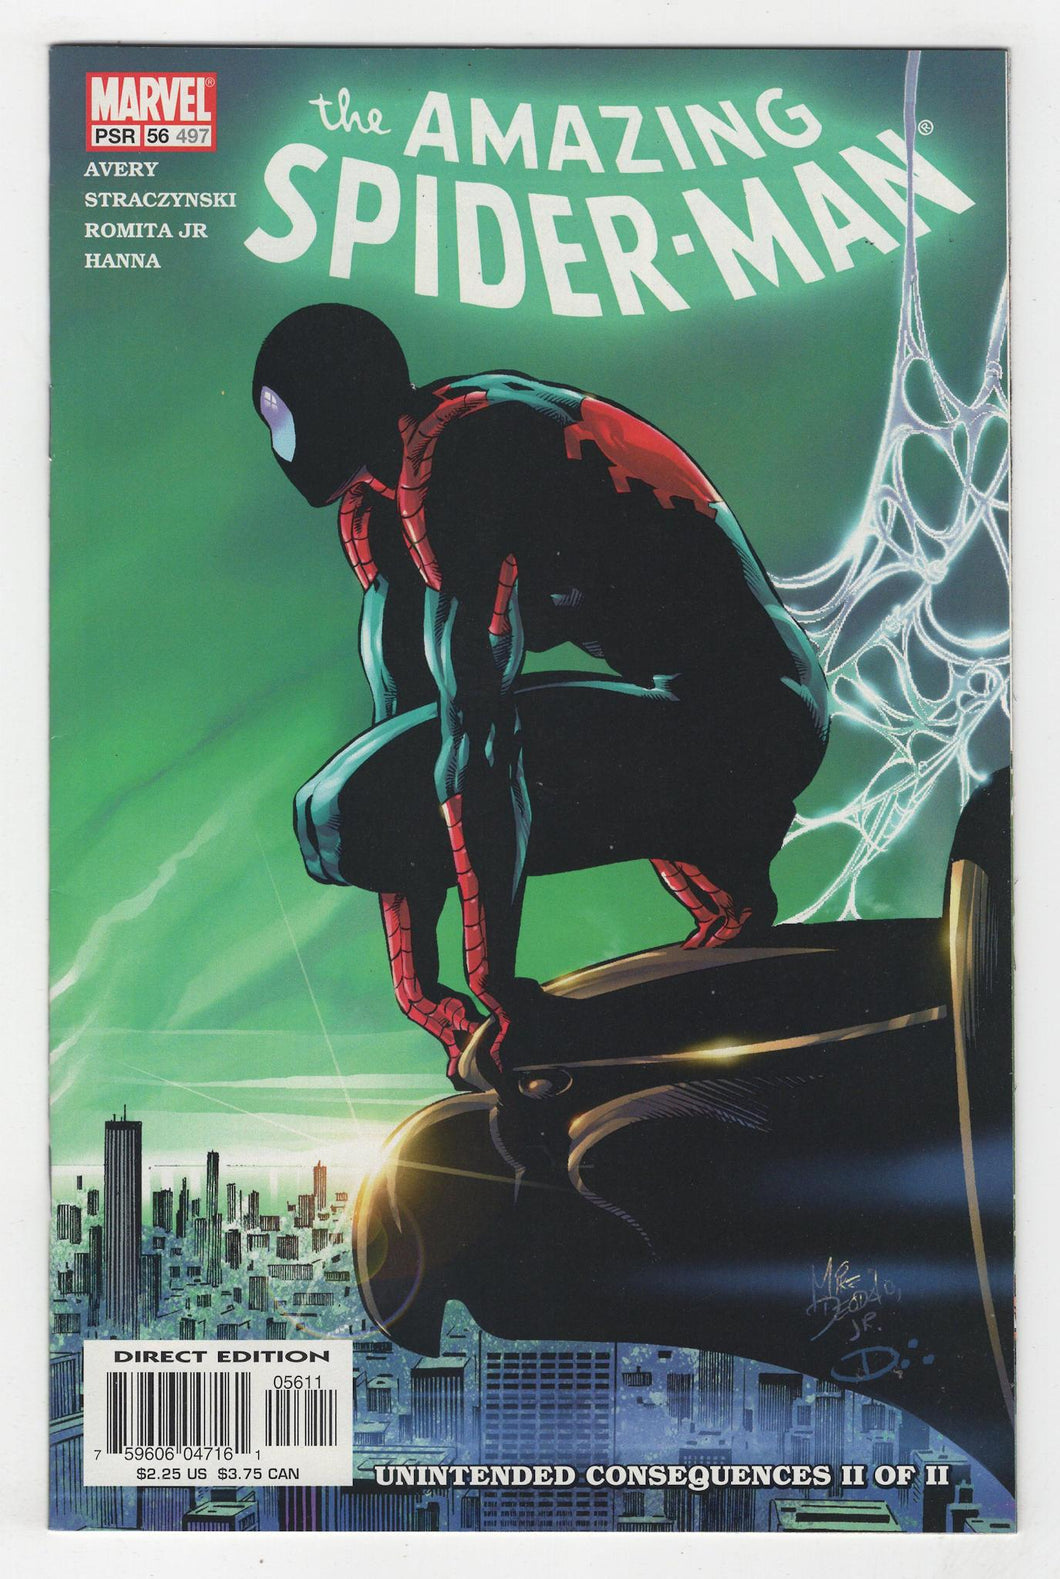 Amazing Spider-Man #56 Cover Front